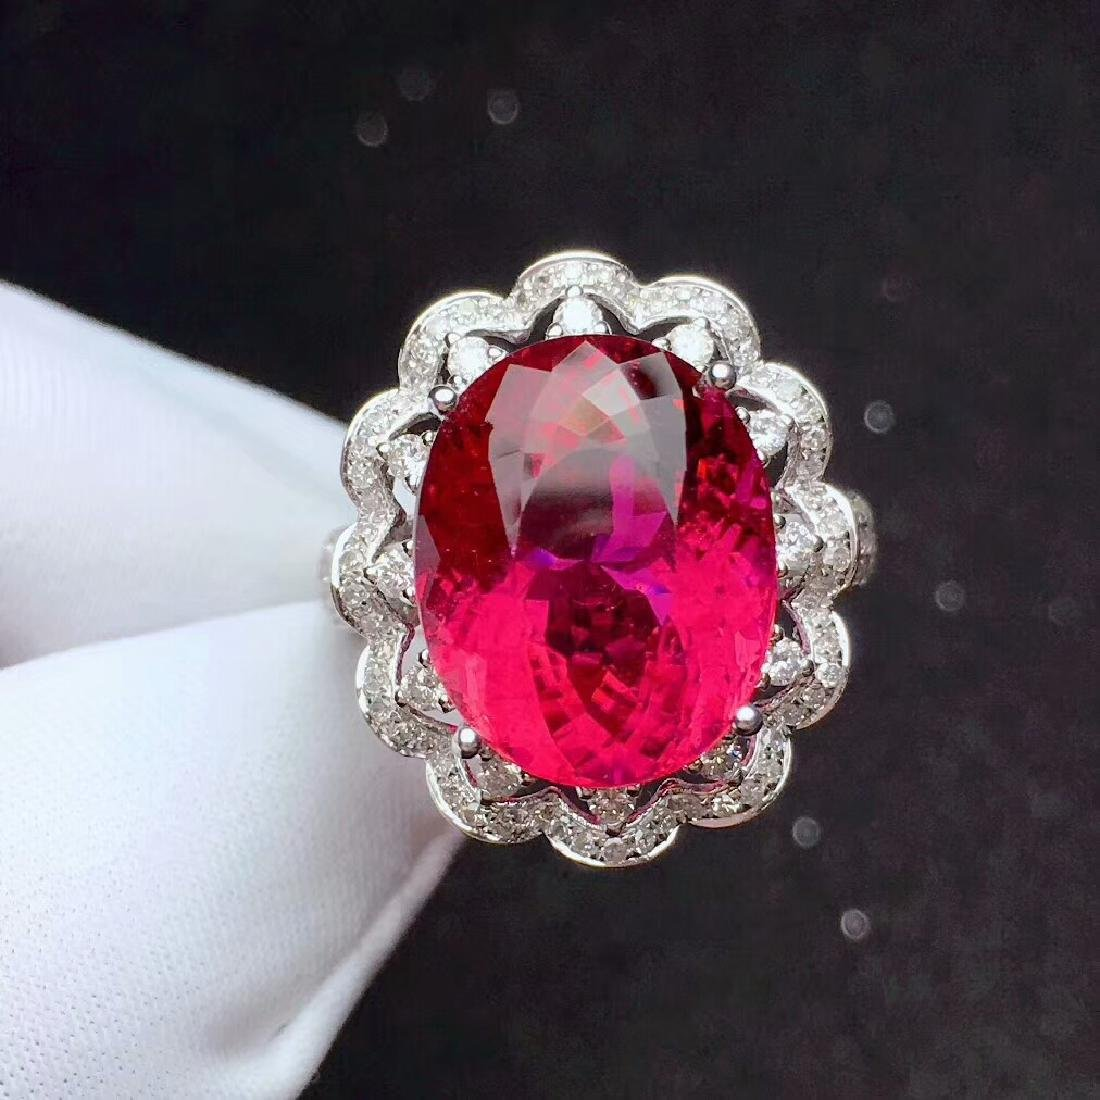 9.8ct Tourmaline Ring in 18kt White Gold